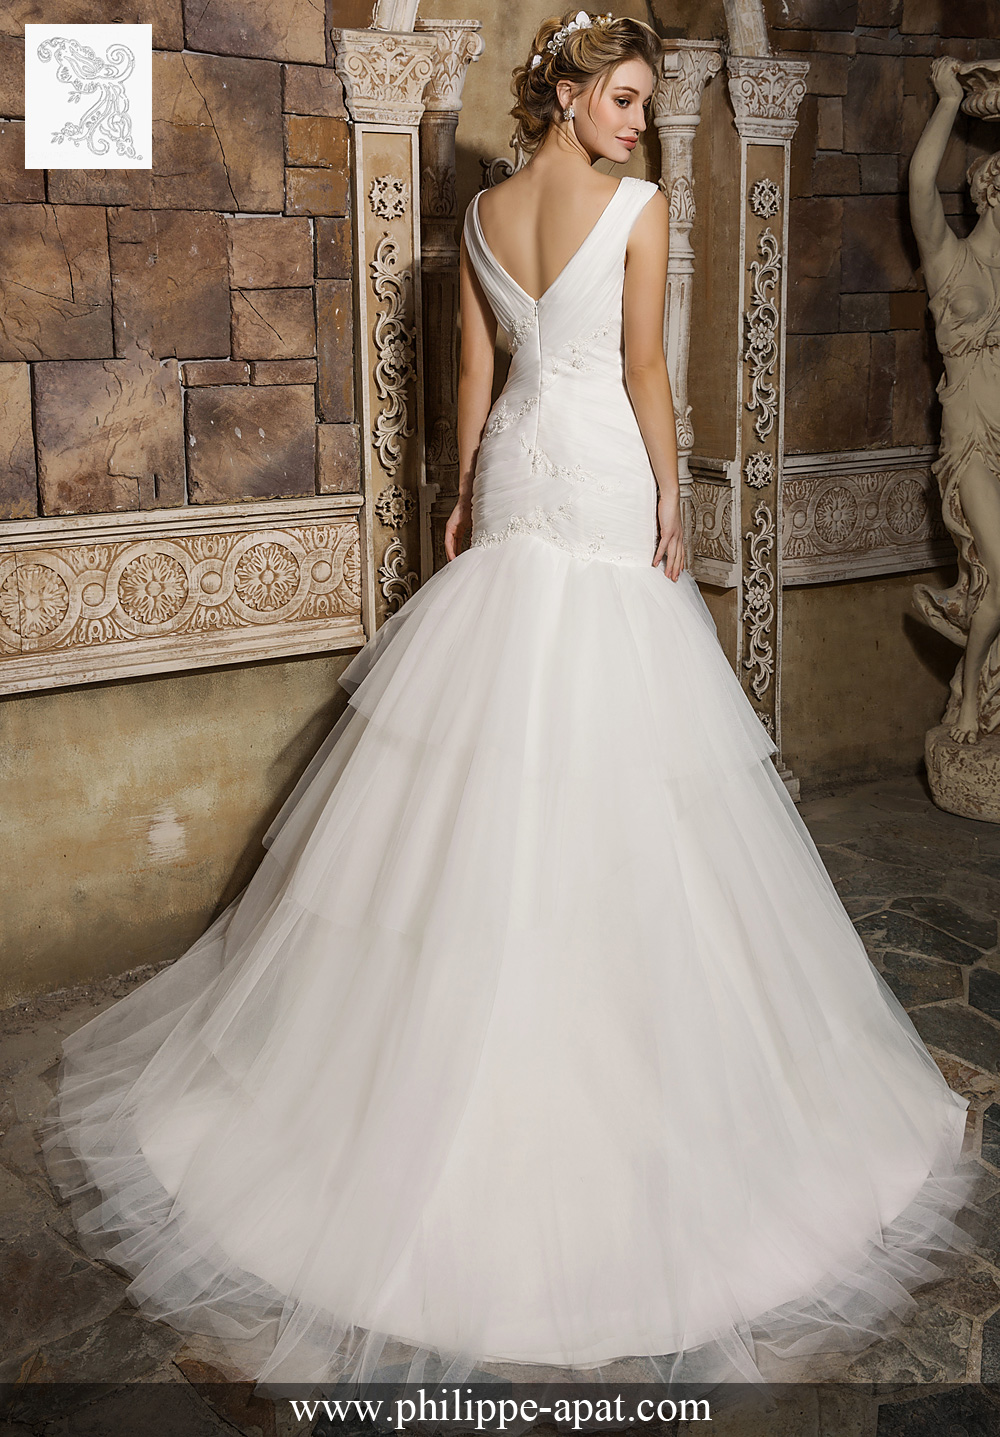 Robe blanche 2017 fit and flare Philippe Apat